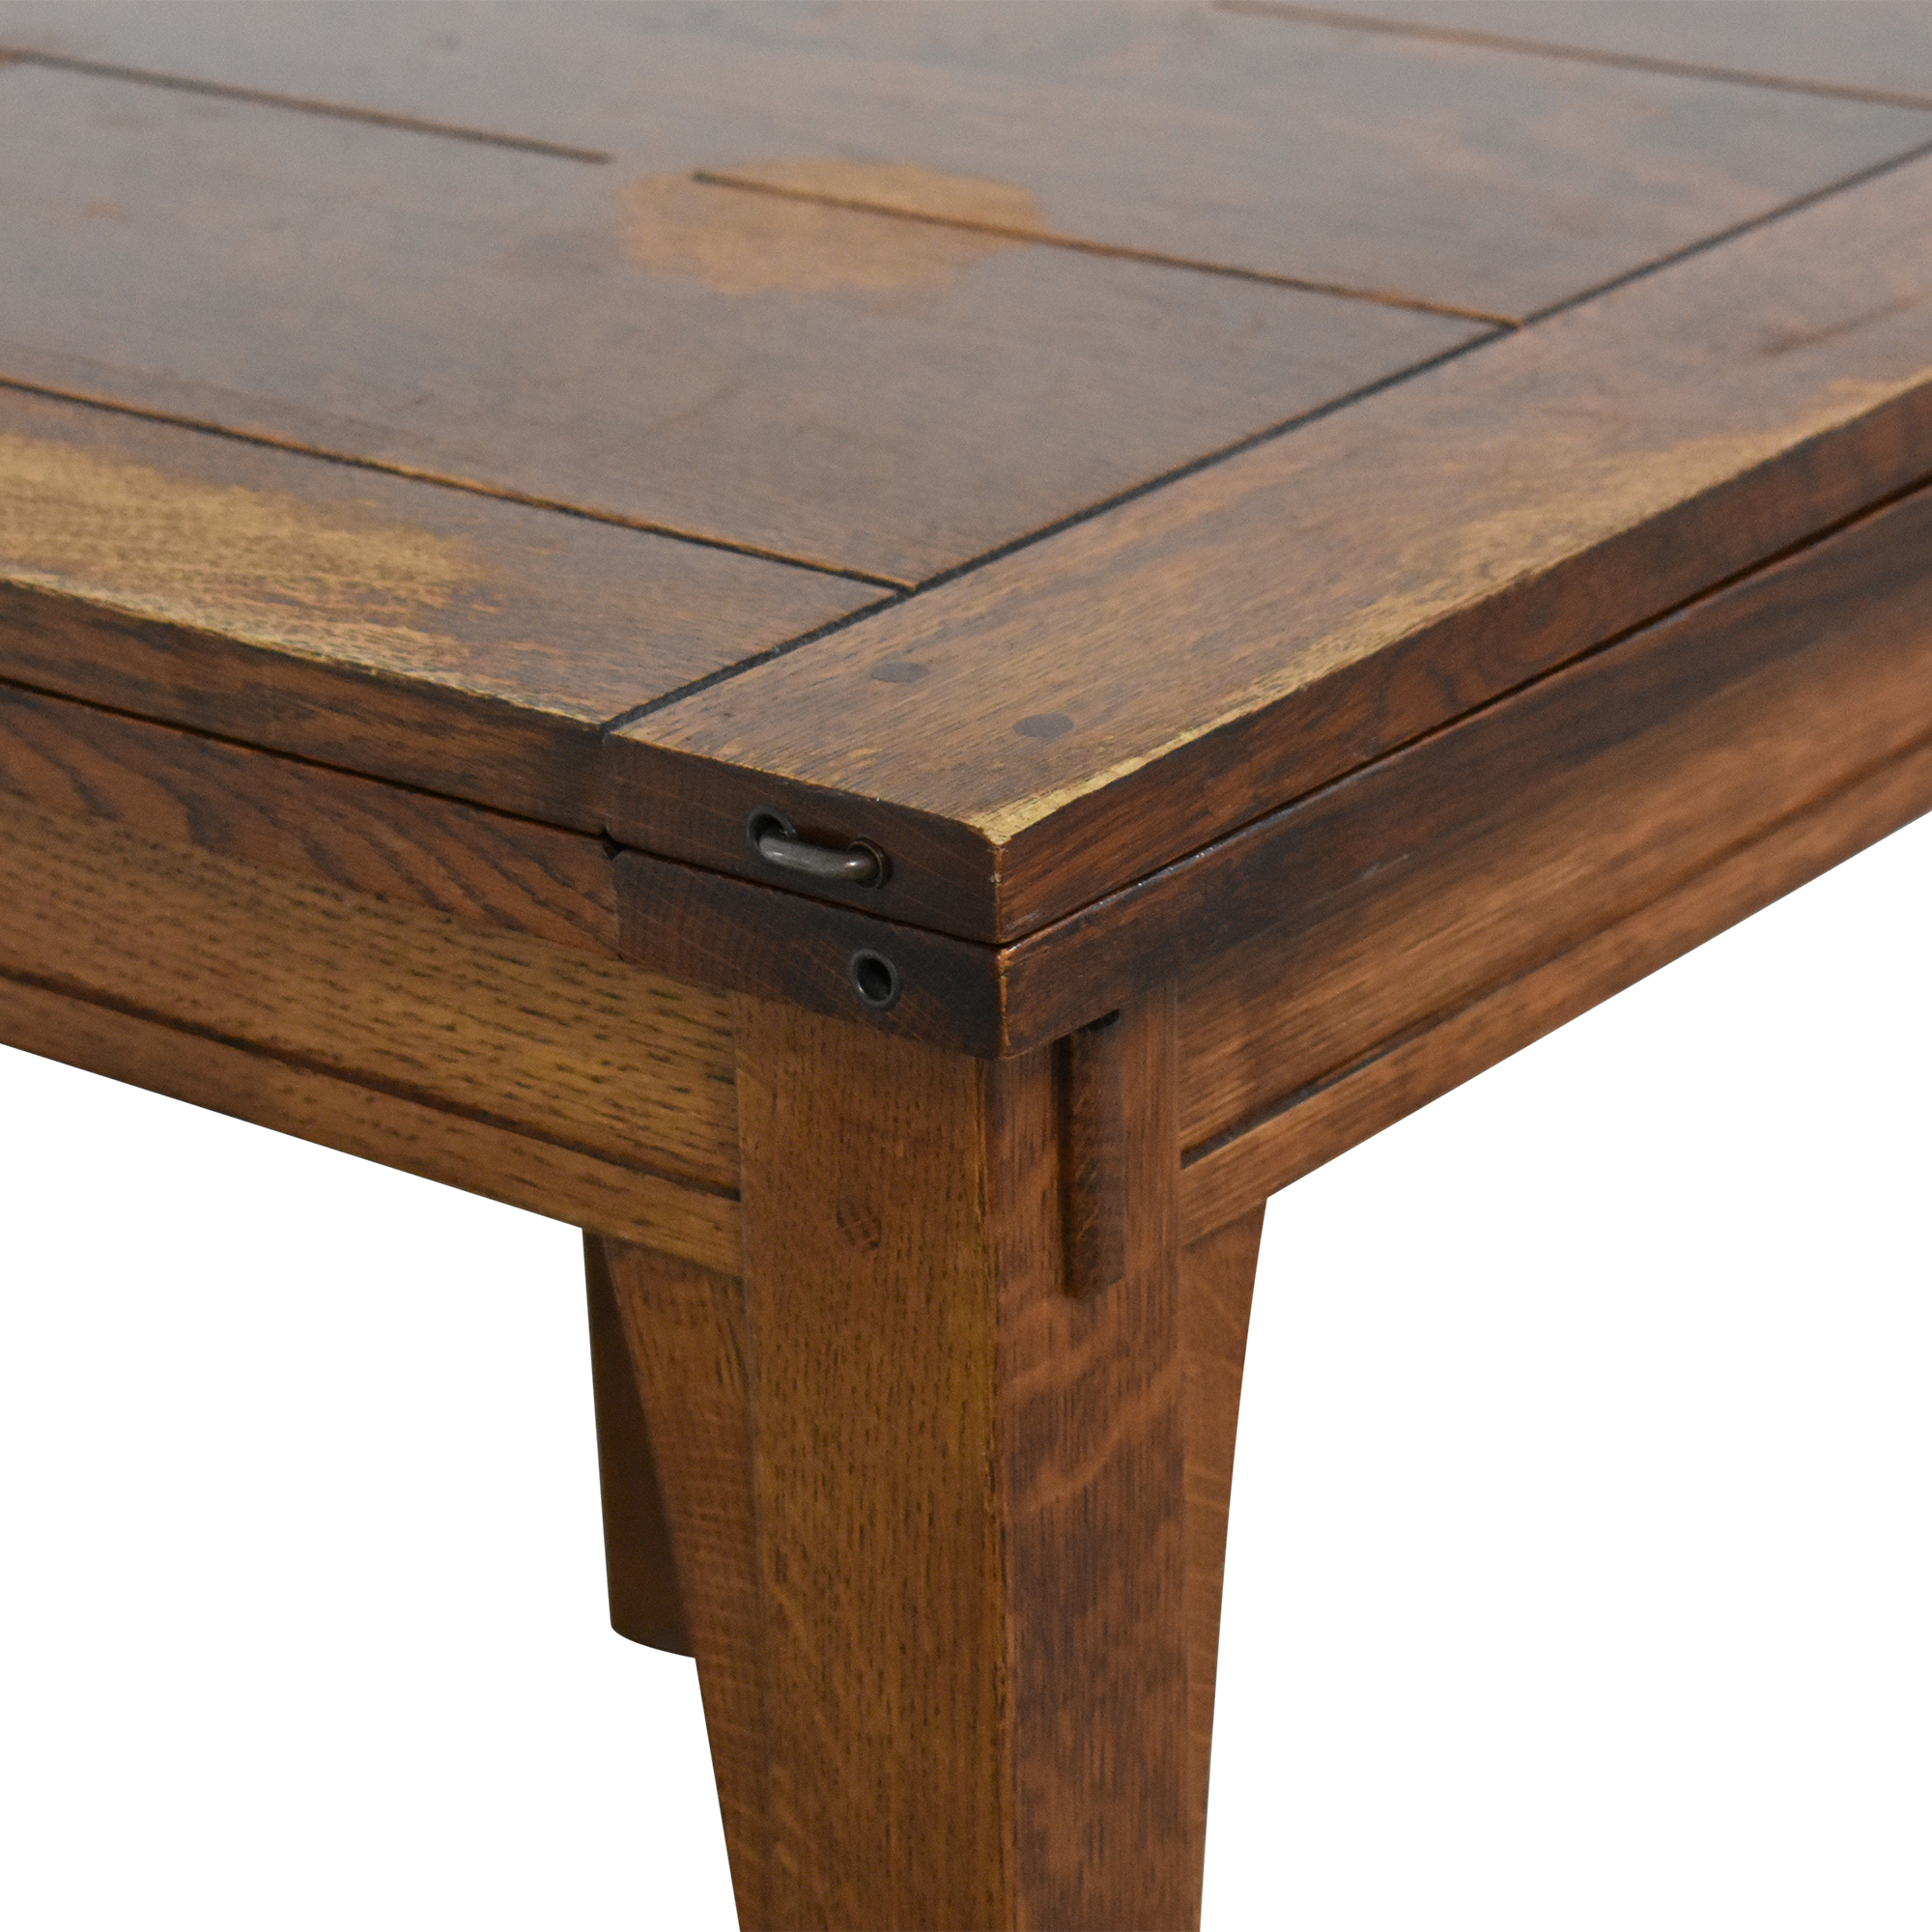 Stickley Furniture Stickley Furniture Mission Flip Top Extendable Table